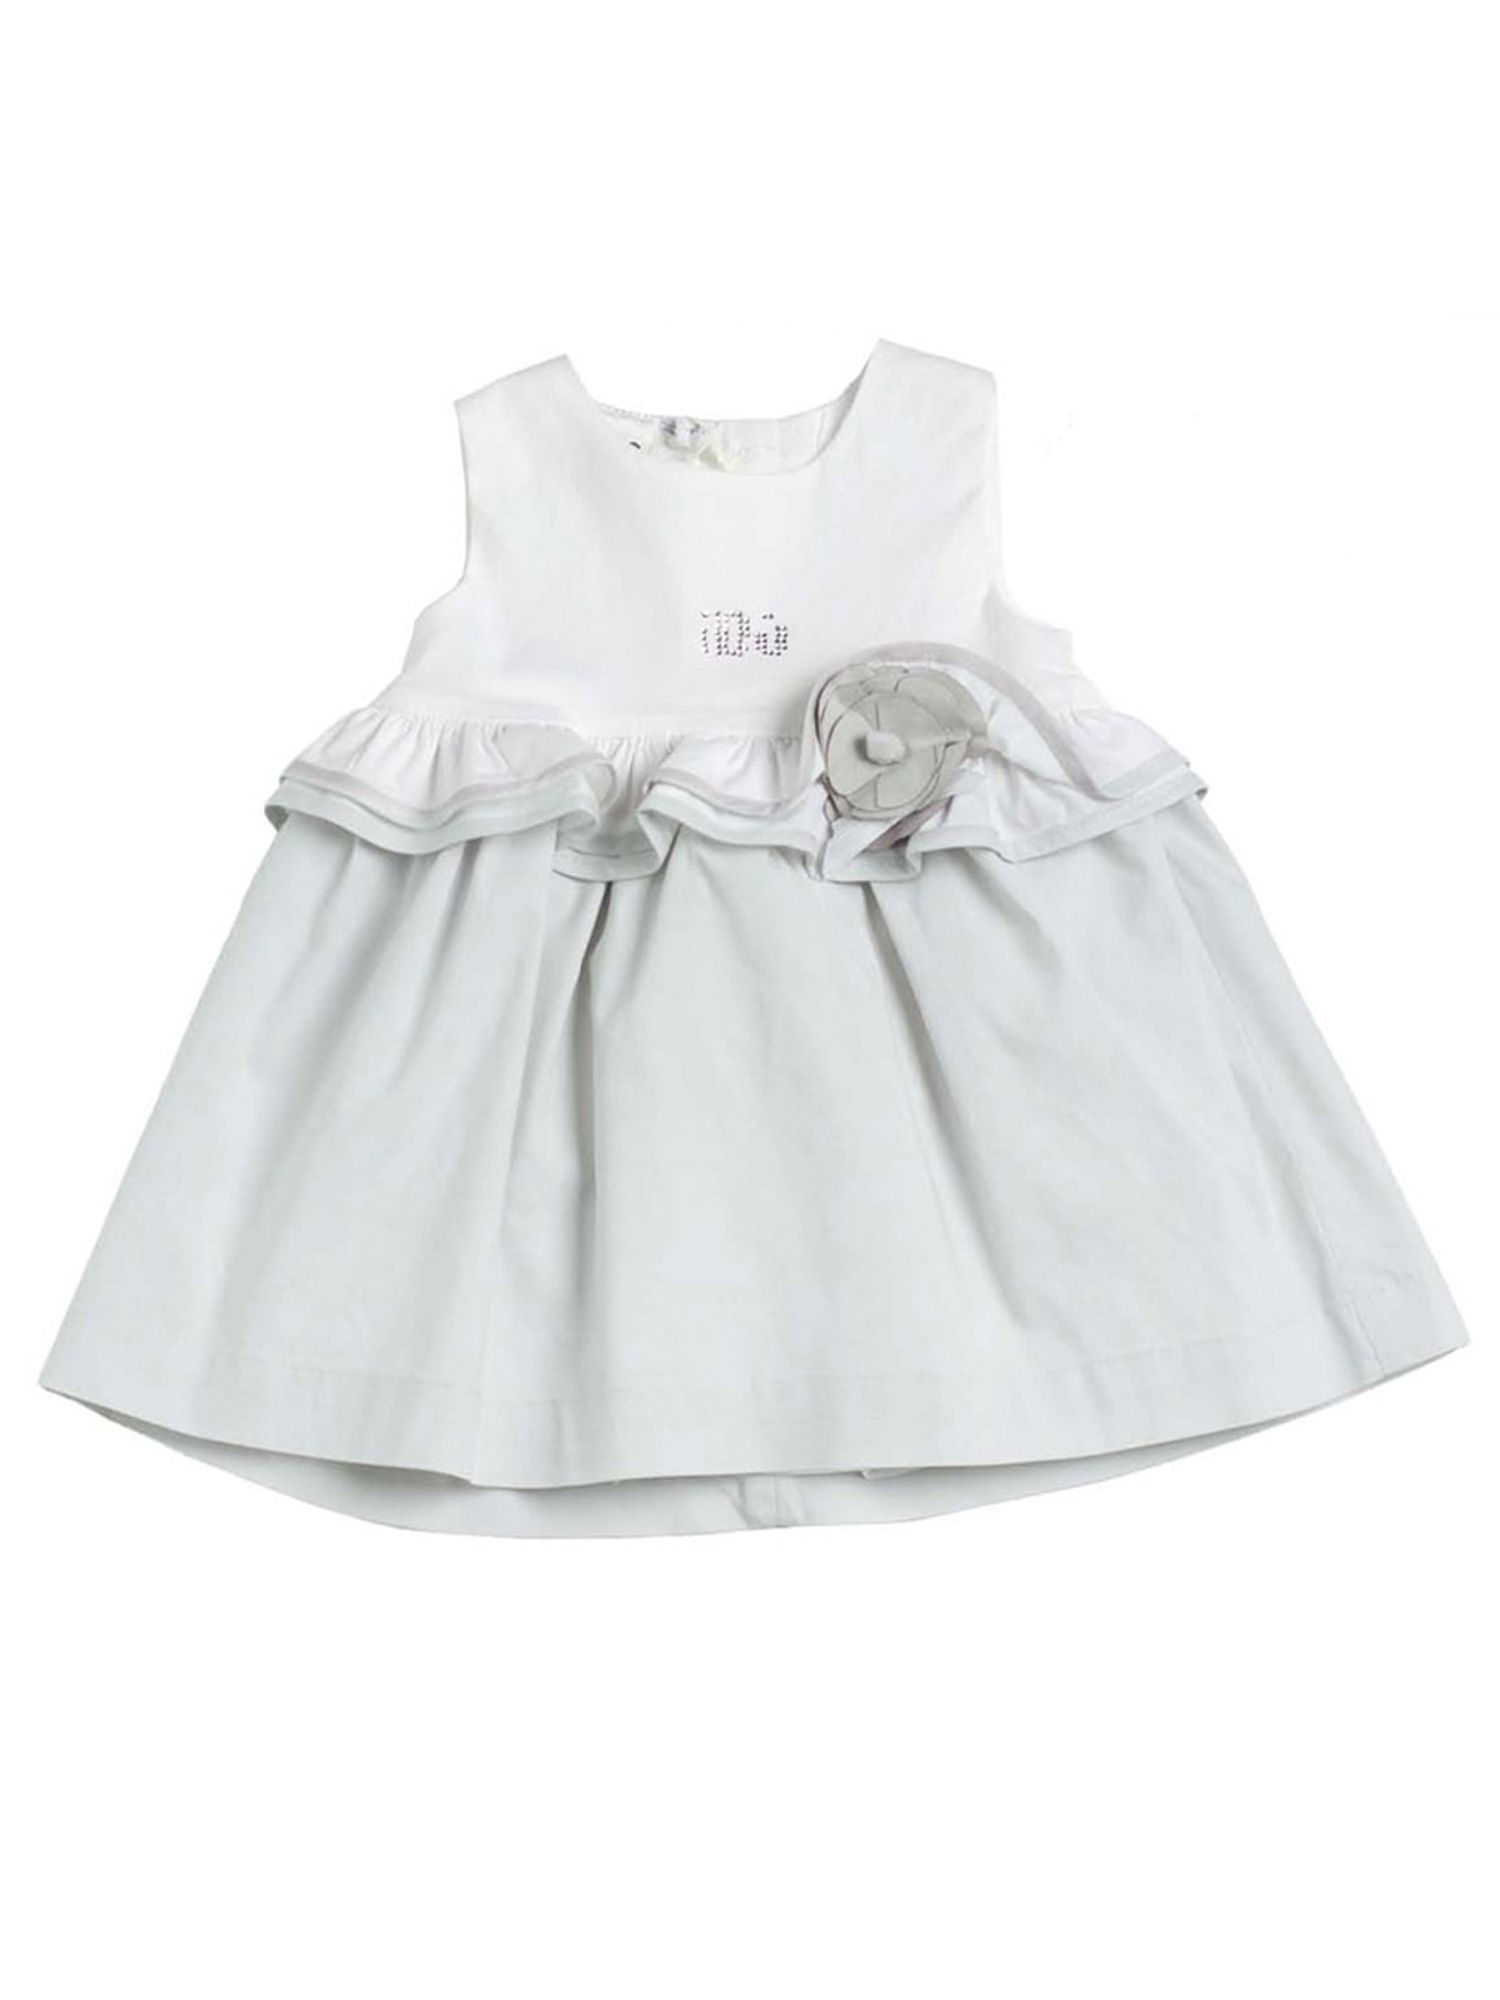 Baby girls grey and white cotton dress